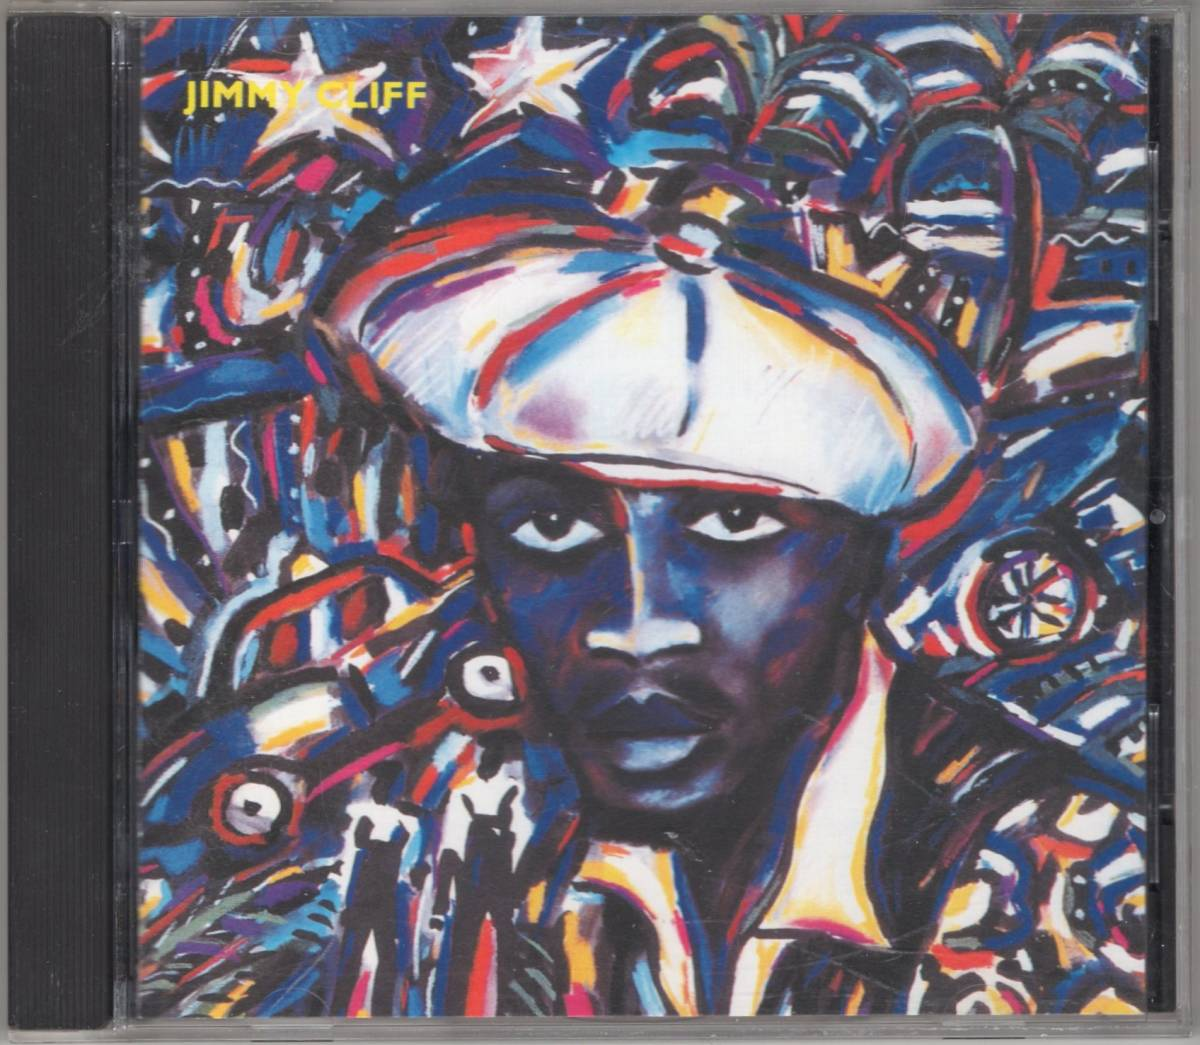 Jimmy Cliff ベスト 国内CD「Reggae Greats」ジミー・クリフ The Harder They Come / Many Rivers to Cross / Sitting in Limbo 他_画像1